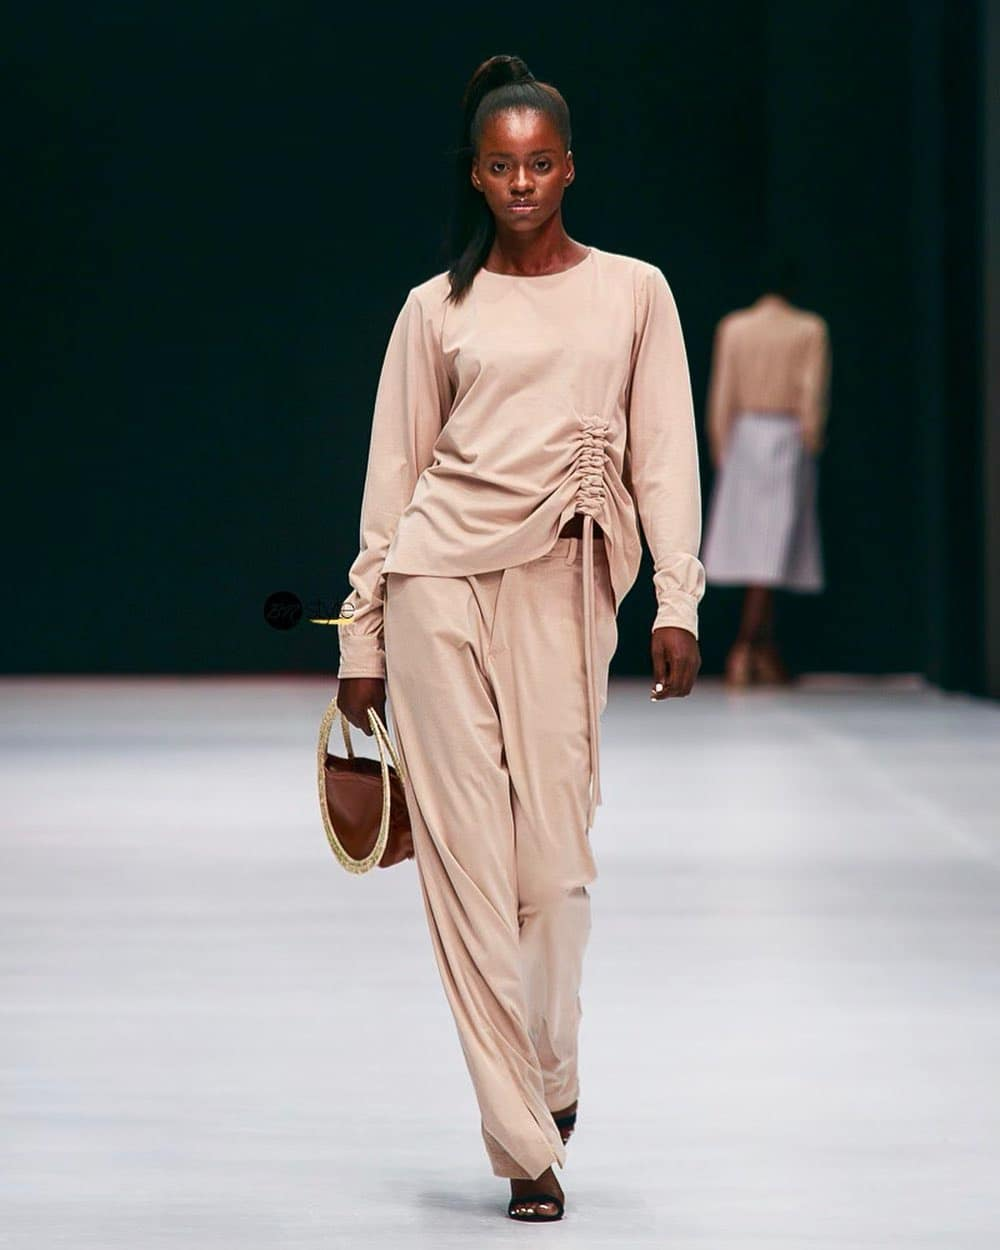 Runway Looks That Stole Our Hearts At The Lagos Fashion Week